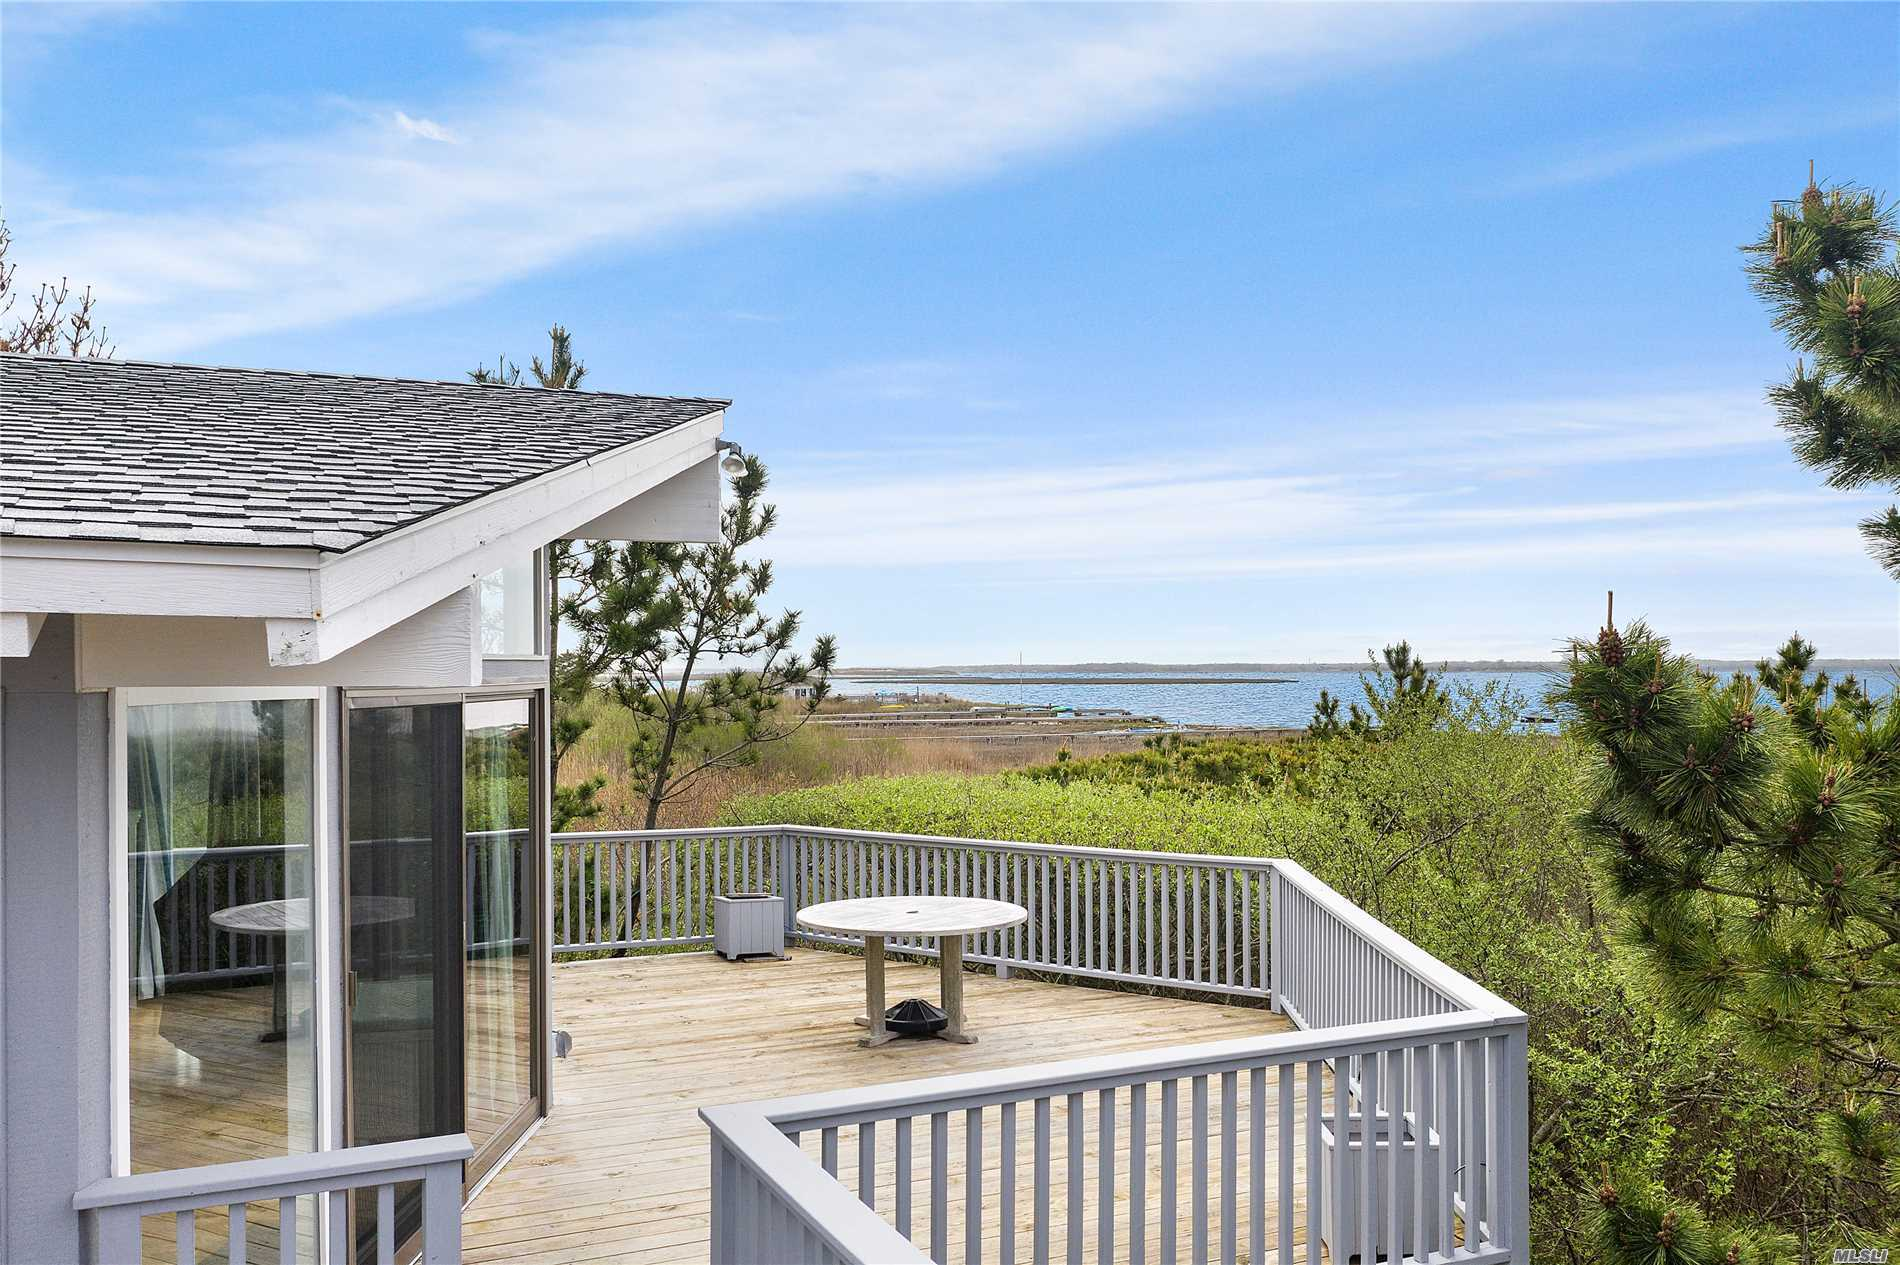 Offering Stunning View Of Moriches Bay, This Raised Ranch Is The Perfect Summer Getaway Or Investment. The Open Floor Plan Affords A Large Eat-In-Kitchen/Family Room With Cathedral Ceilings, Master Suite, 2 Guest Rooms & 2 Full Baths. Enjoy Summer Sunsets & Ocean & Bay Access.